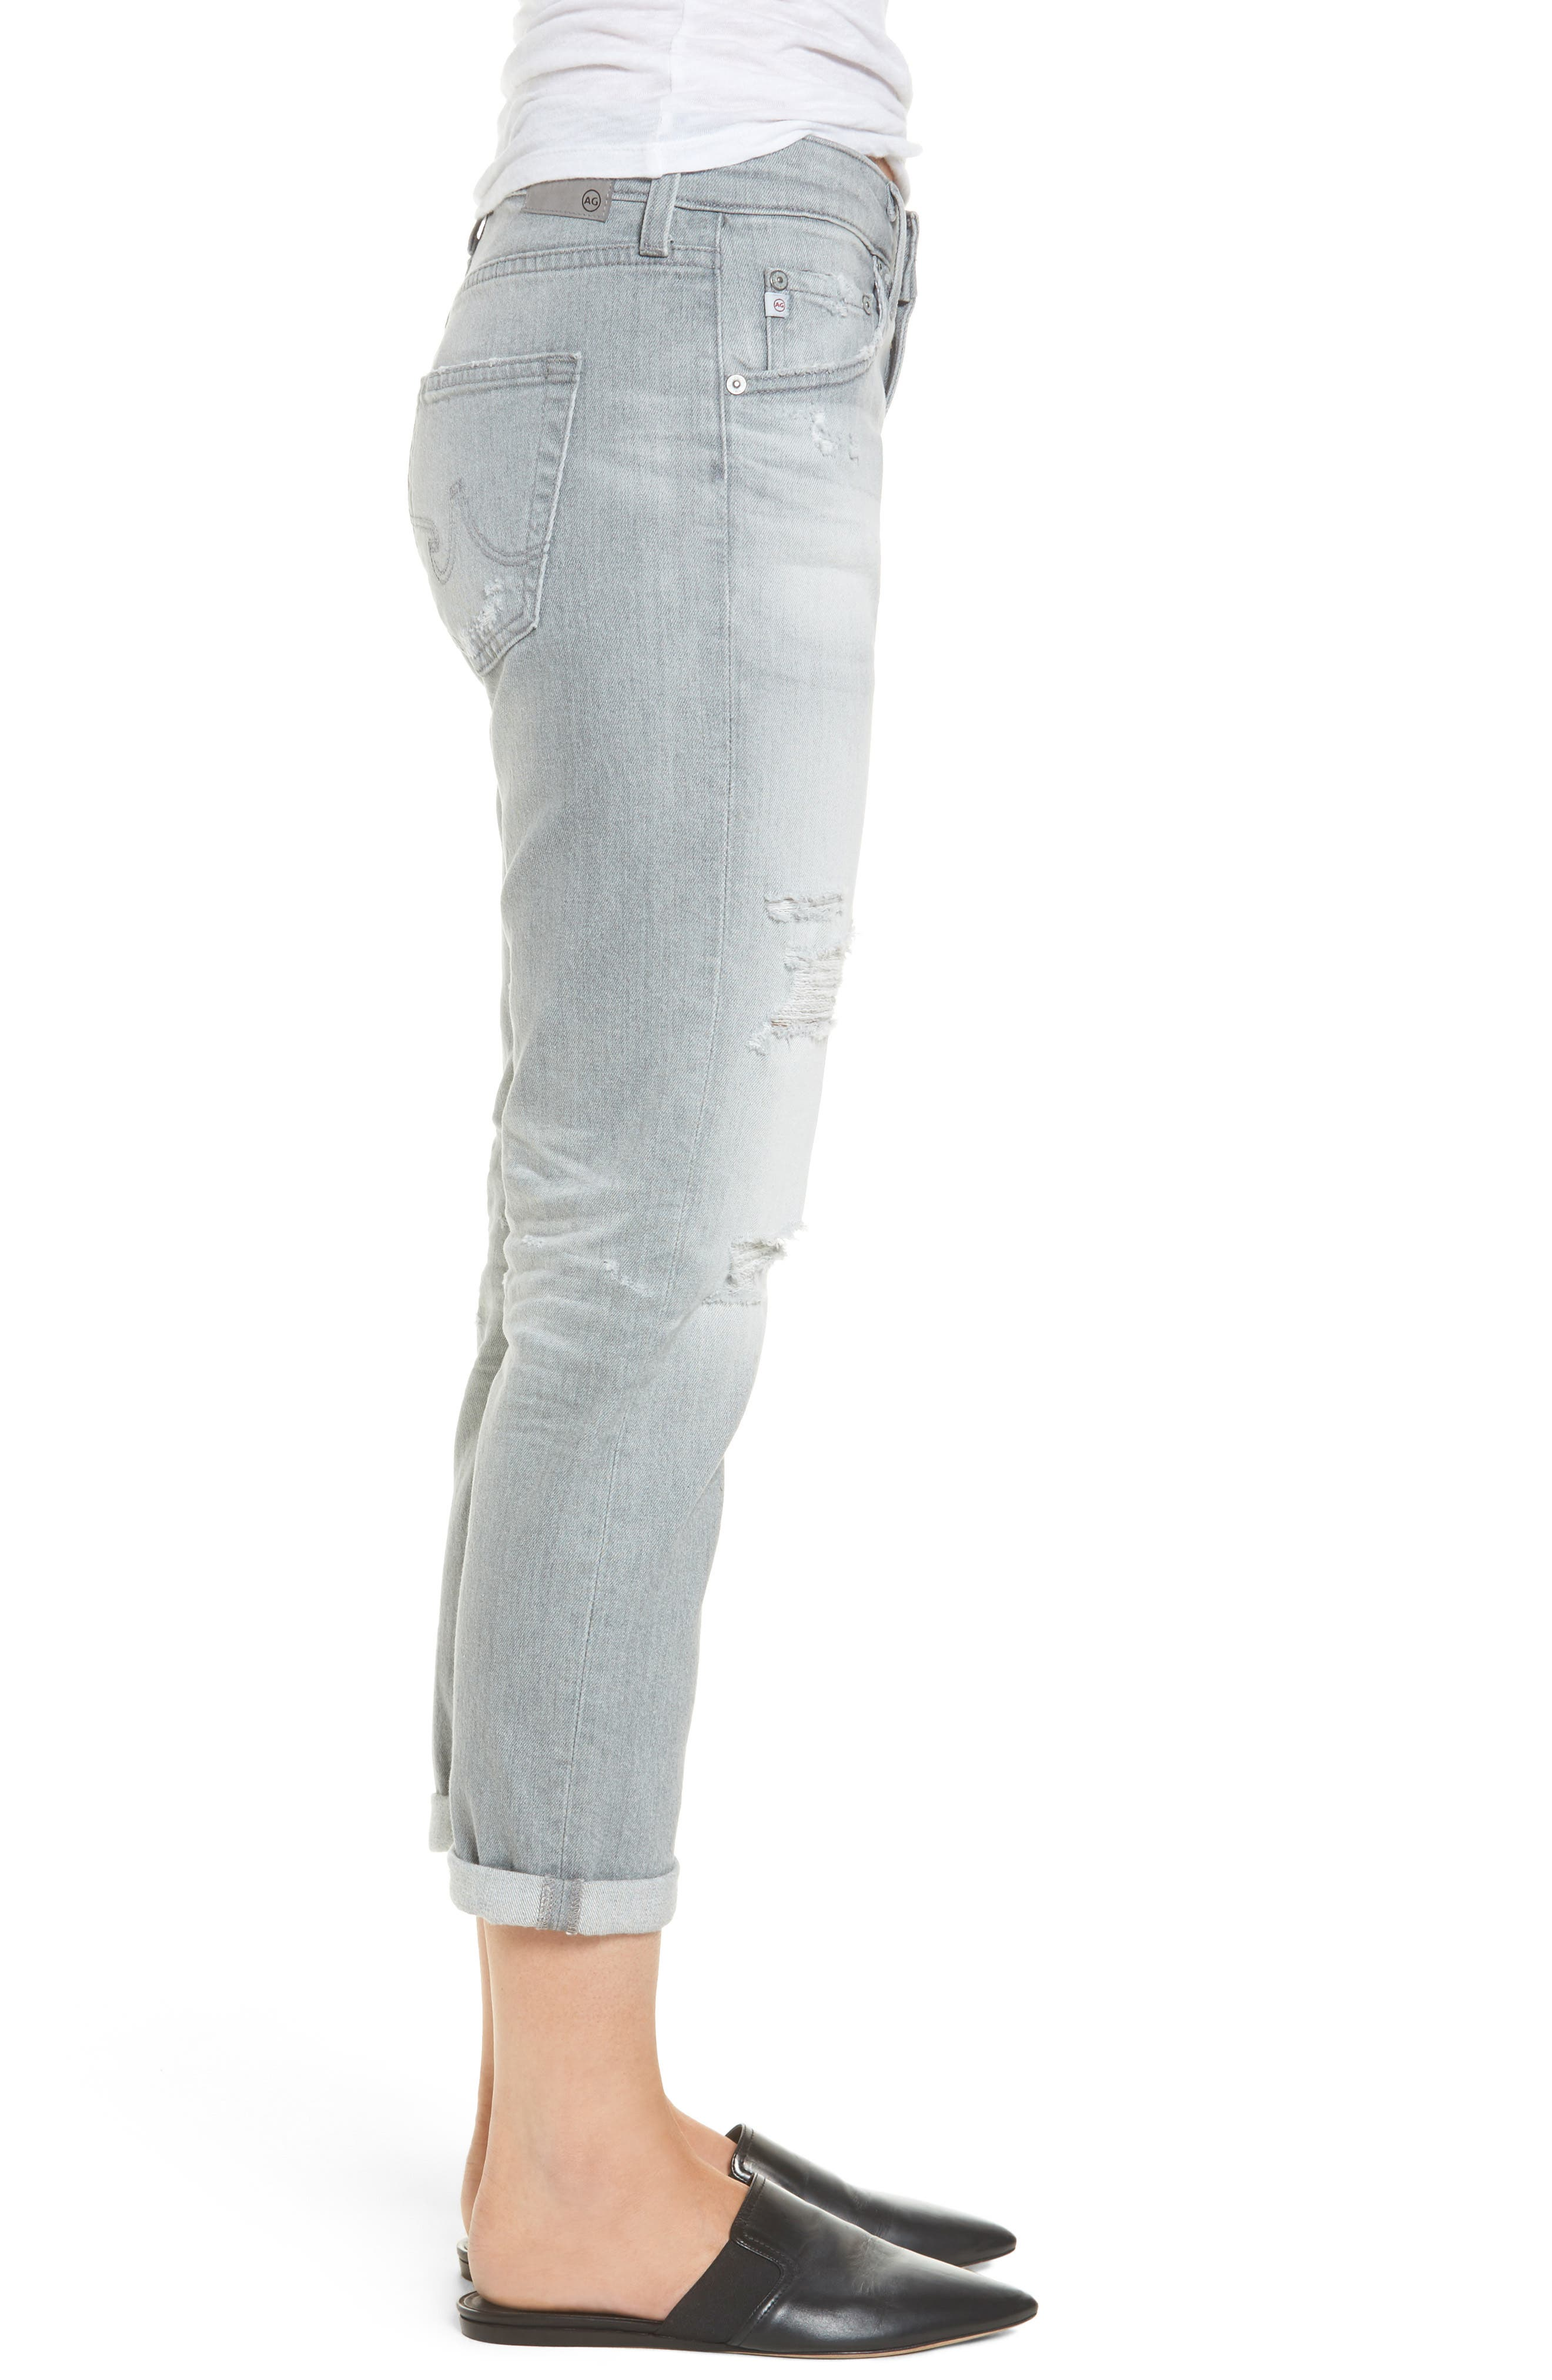 Ex-Boyfriend Slim Jeans,                             Alternate thumbnail 3, color,                             9 Years Cadence